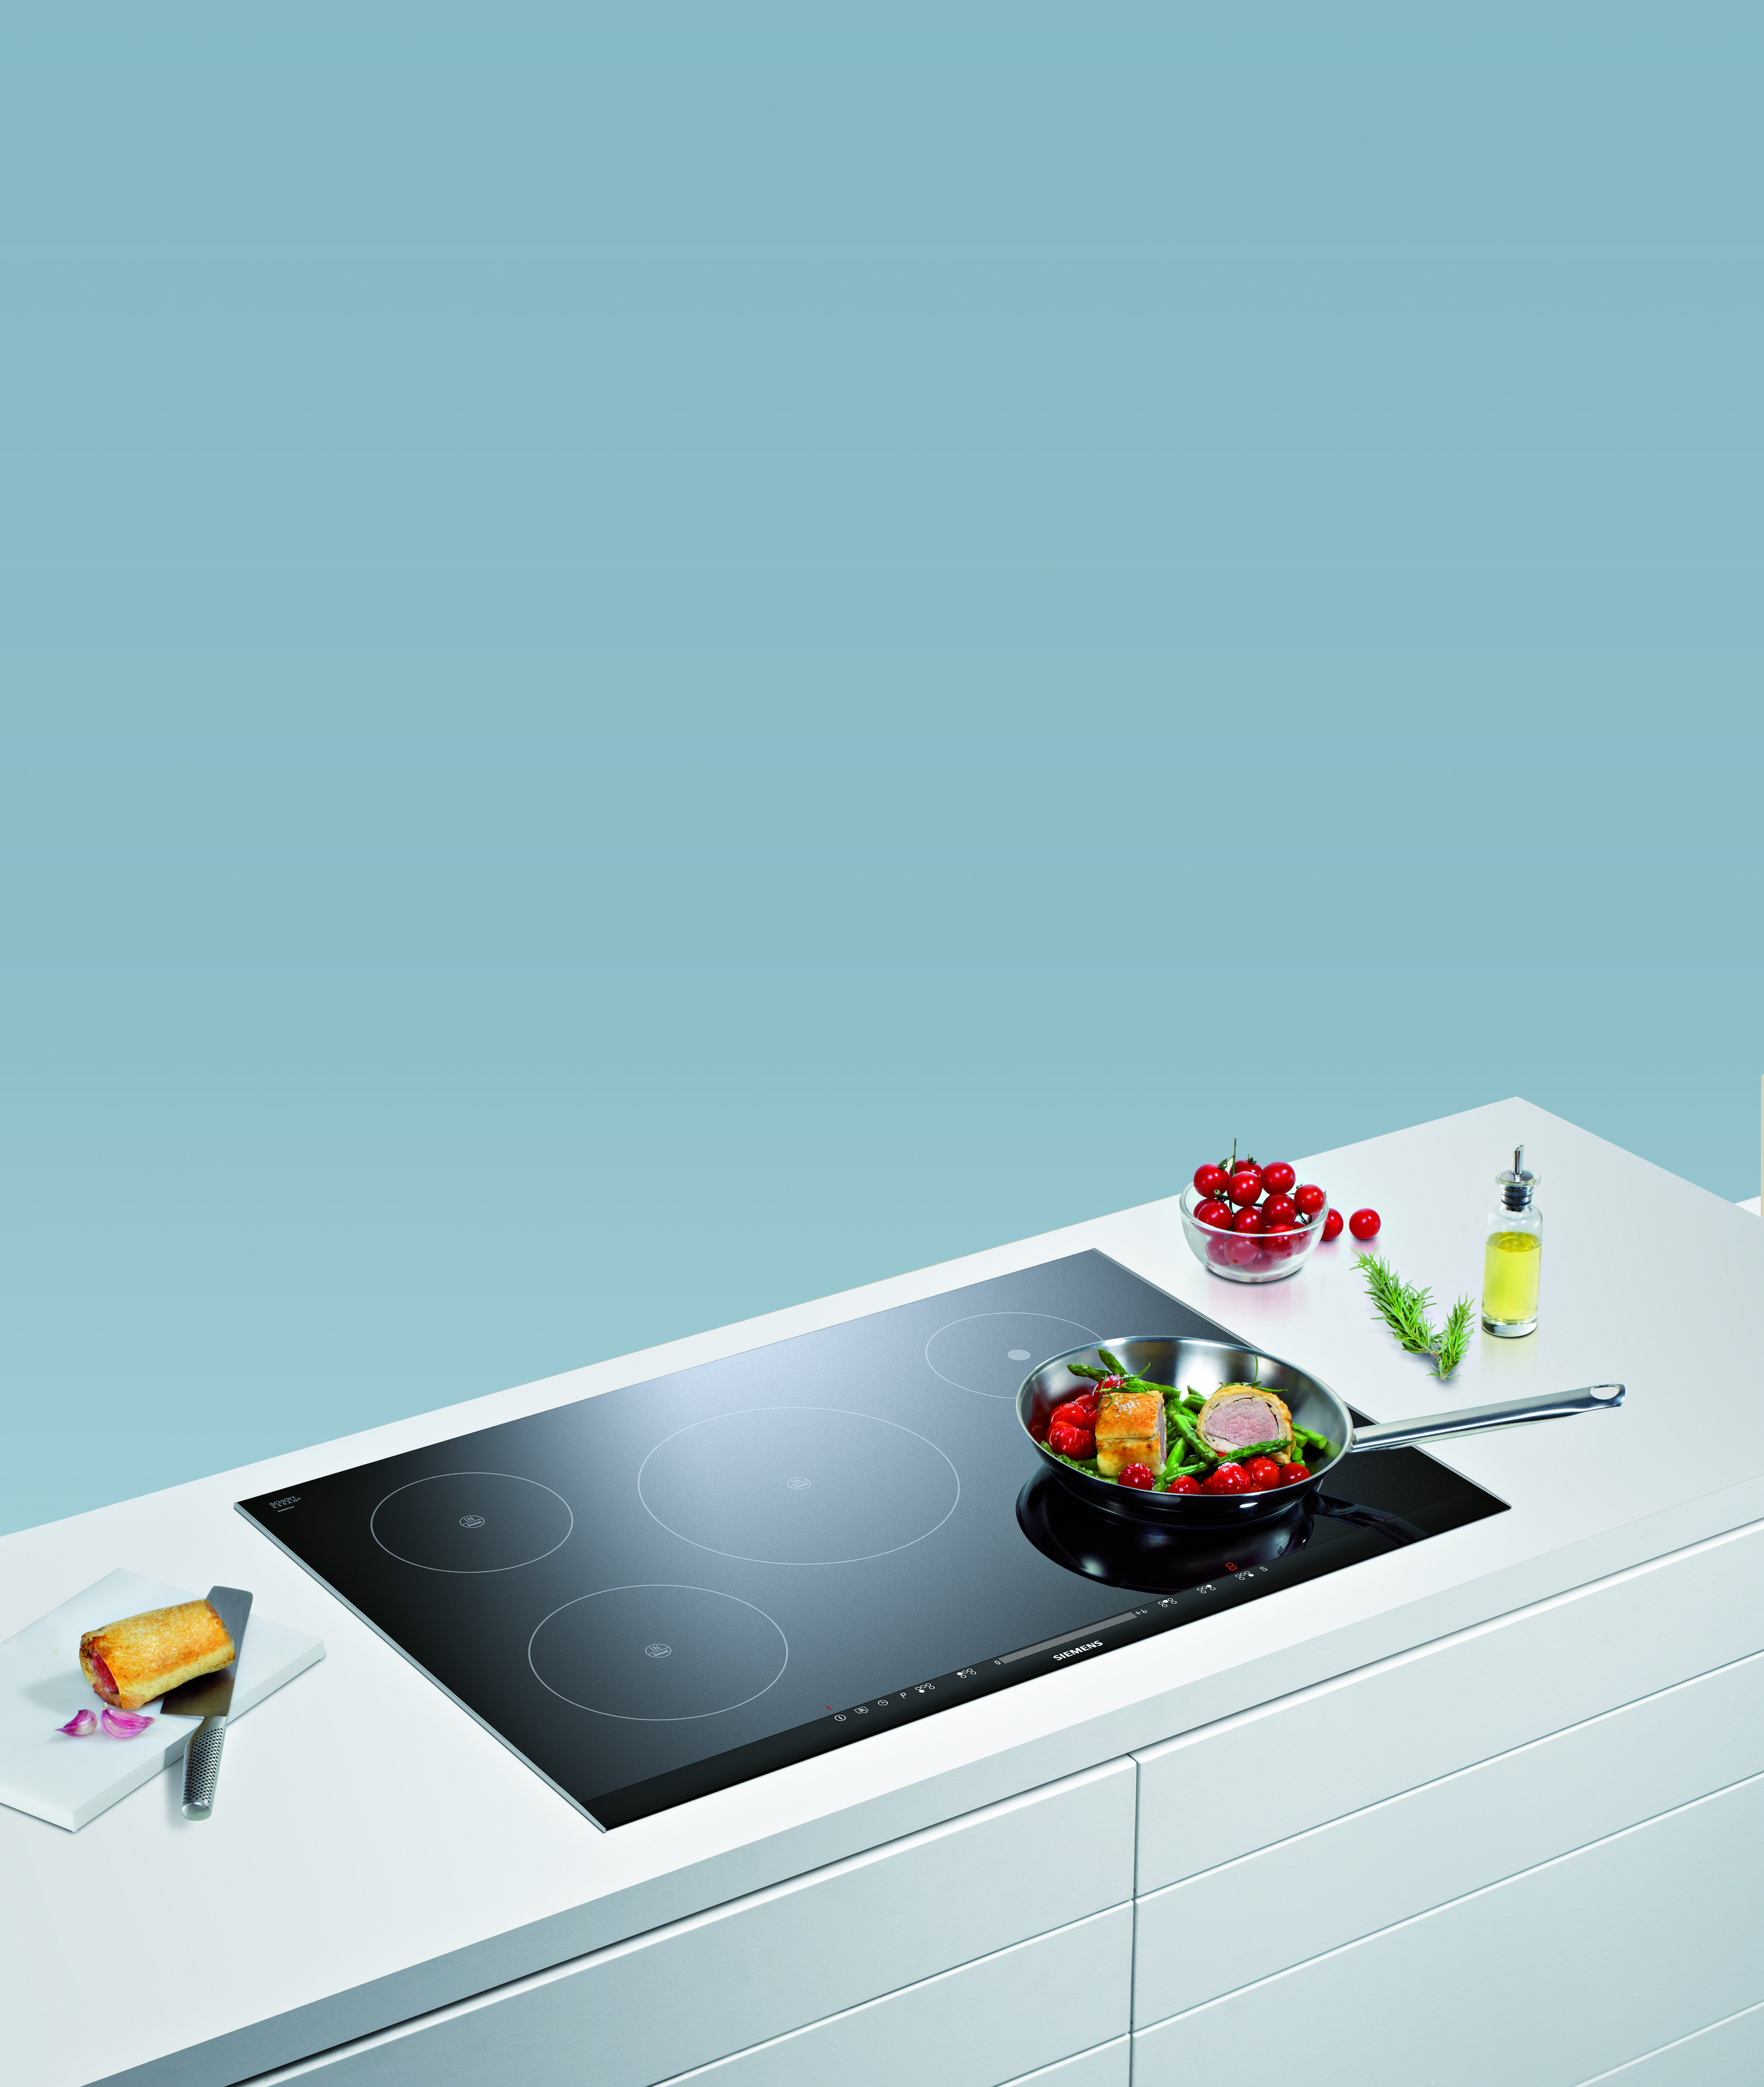 <p><strong>Kitchens</strong><a href=/ourkitchens>View Our Range →</a></p>